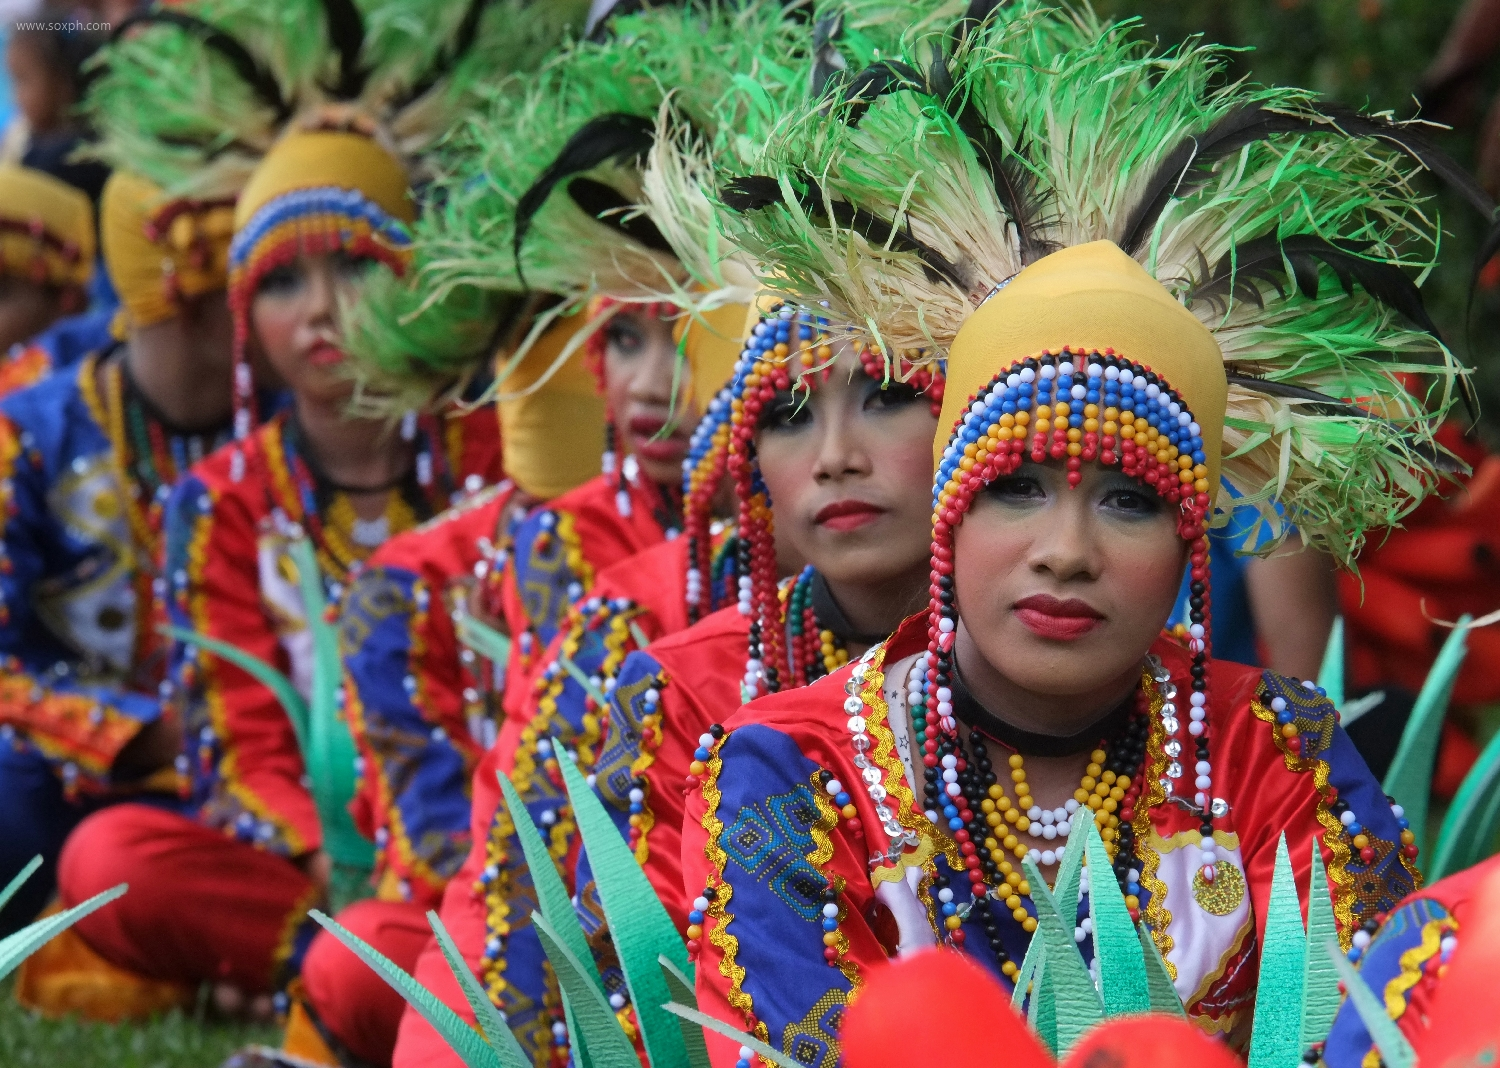 Ingkil-Ingkil sa Salagaan, a colorful showcase of rich culture in Kalamansig